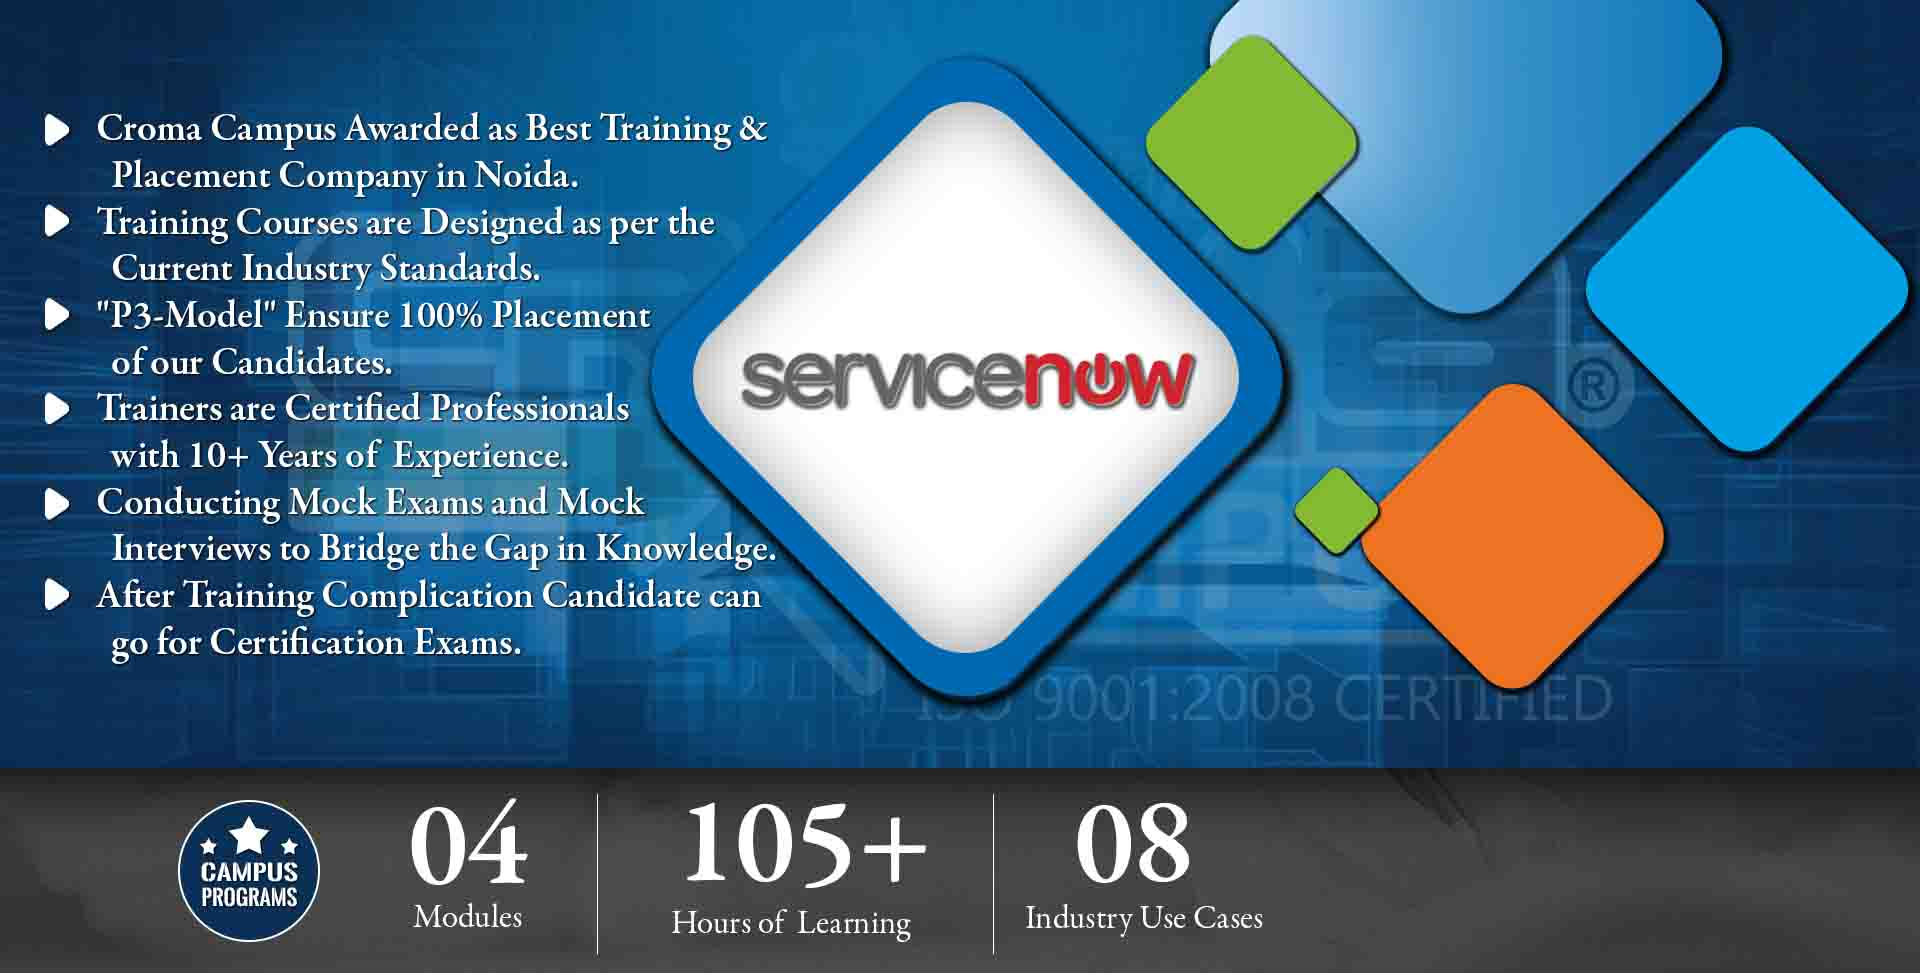 ServiceNow Training in Noida NCR- Croma Campus